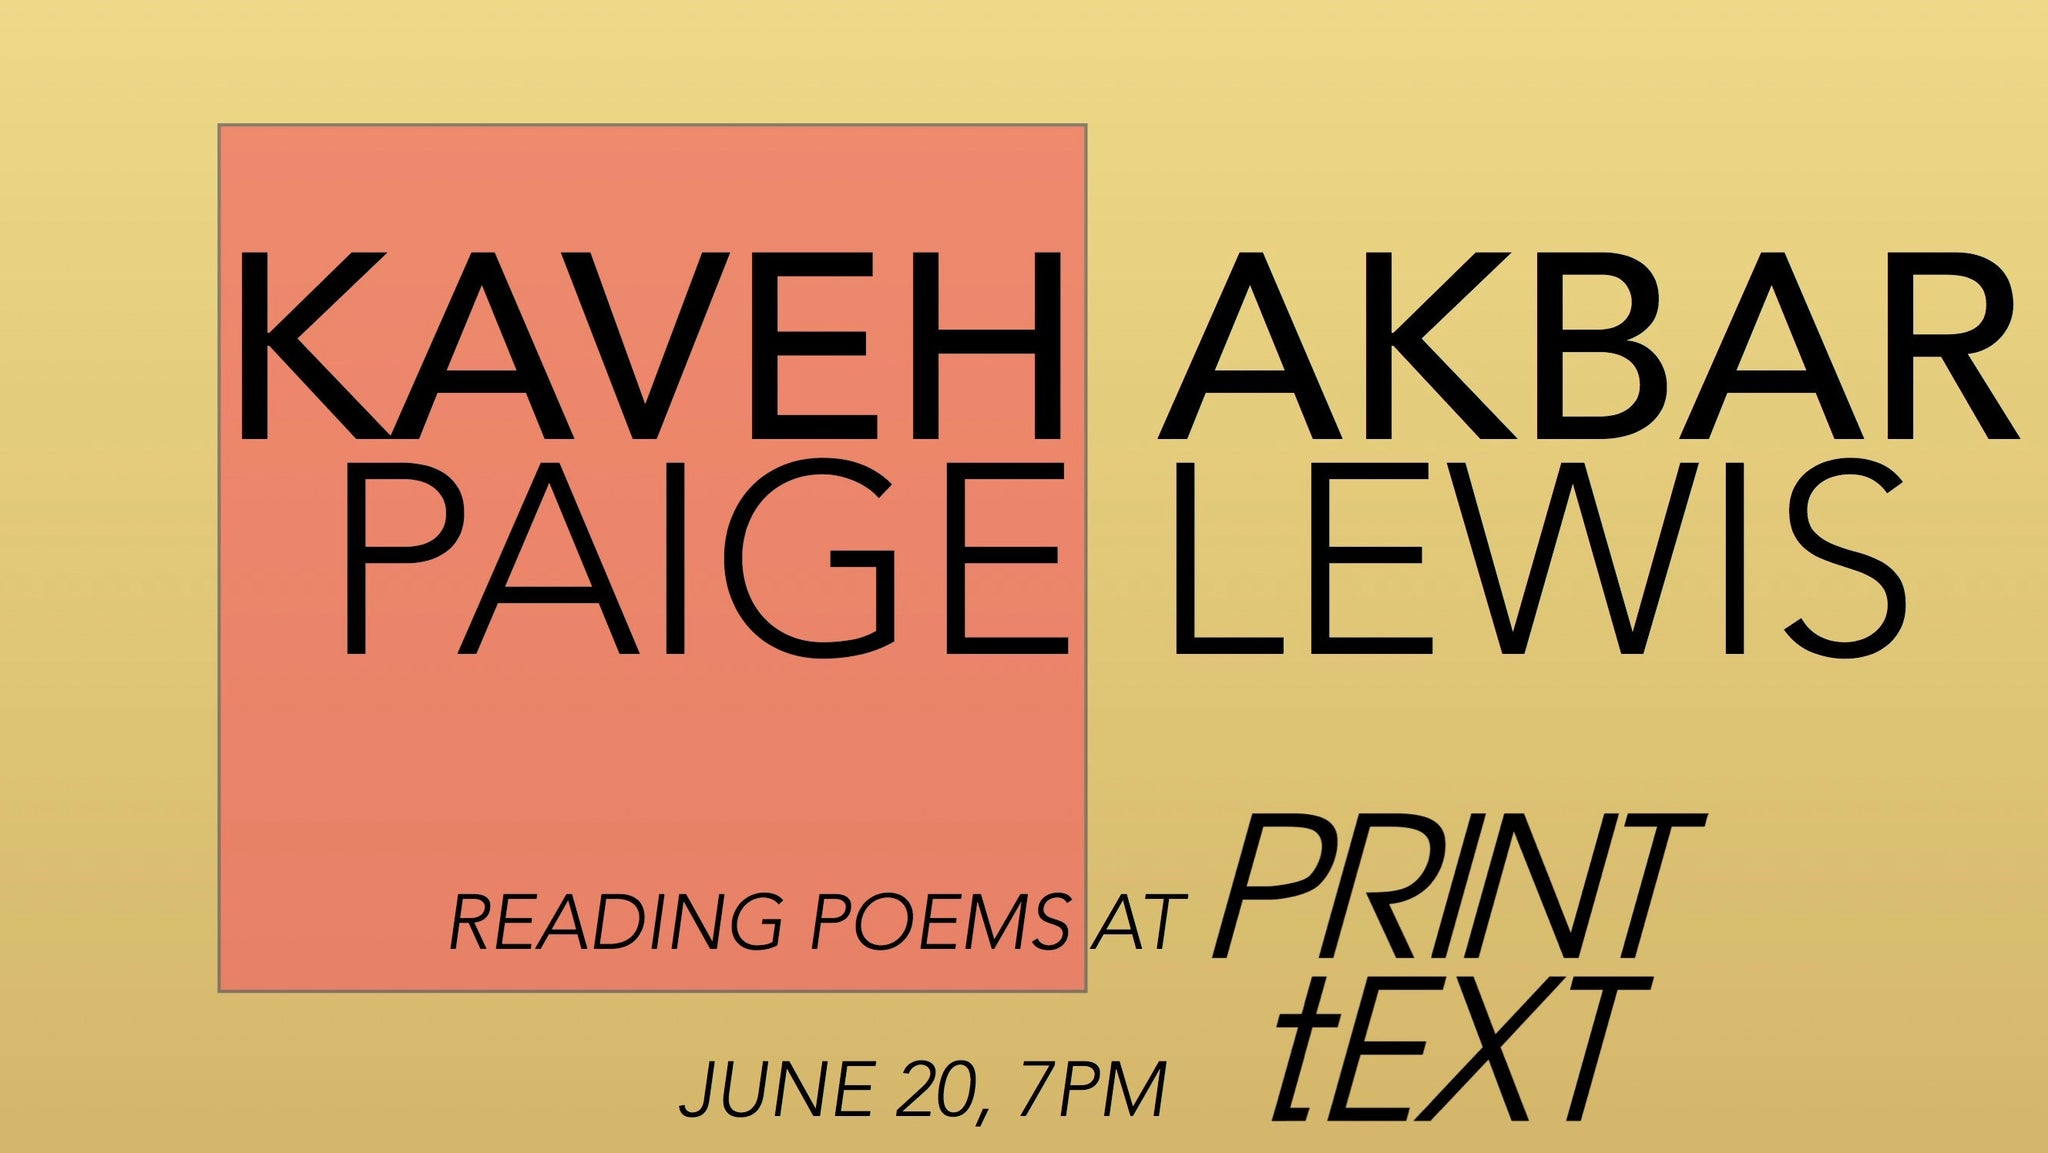 June 20, 2017 | Kaveh Akbar and Paige Lewis Poetry Reading